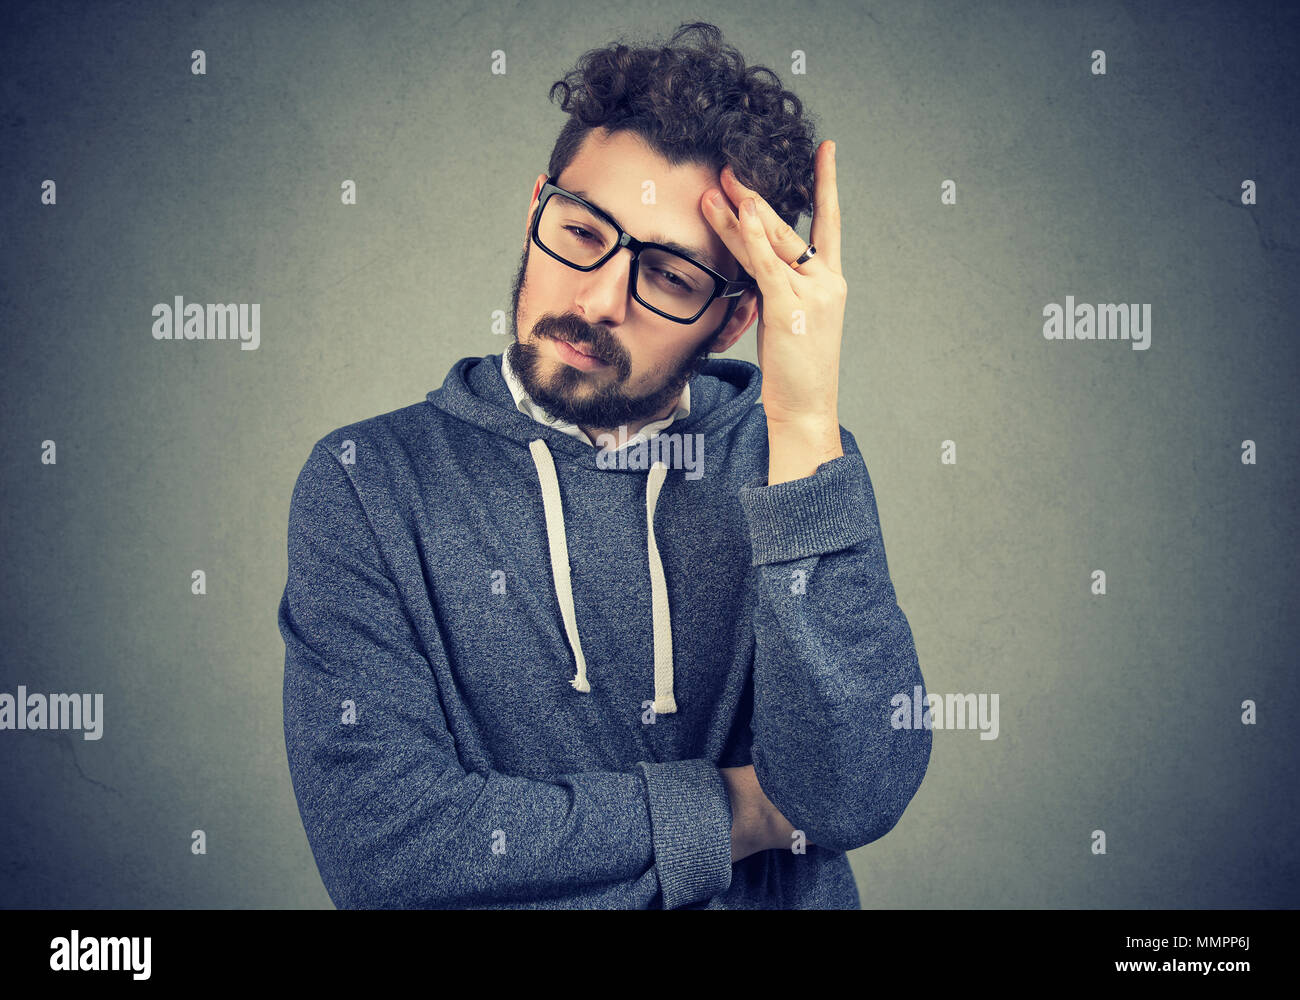 Sad preoccupied man looking down standing on gray background - Stock Image